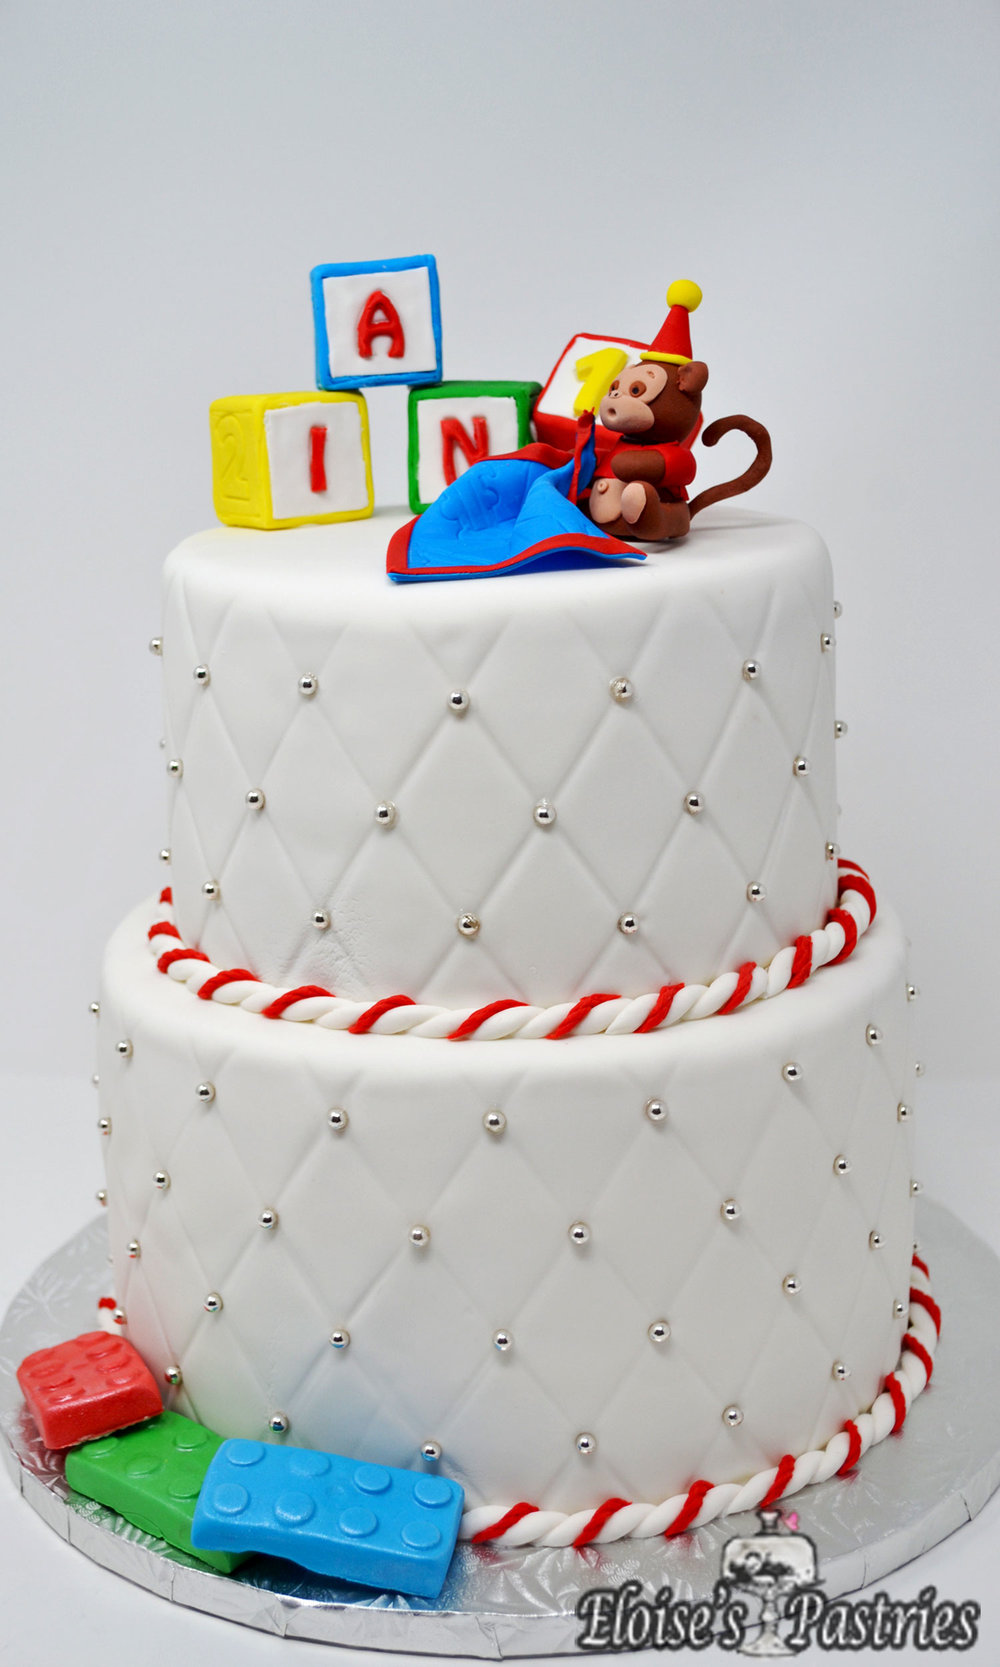 Sweet and Simple Monkey Fun Birthday Cake